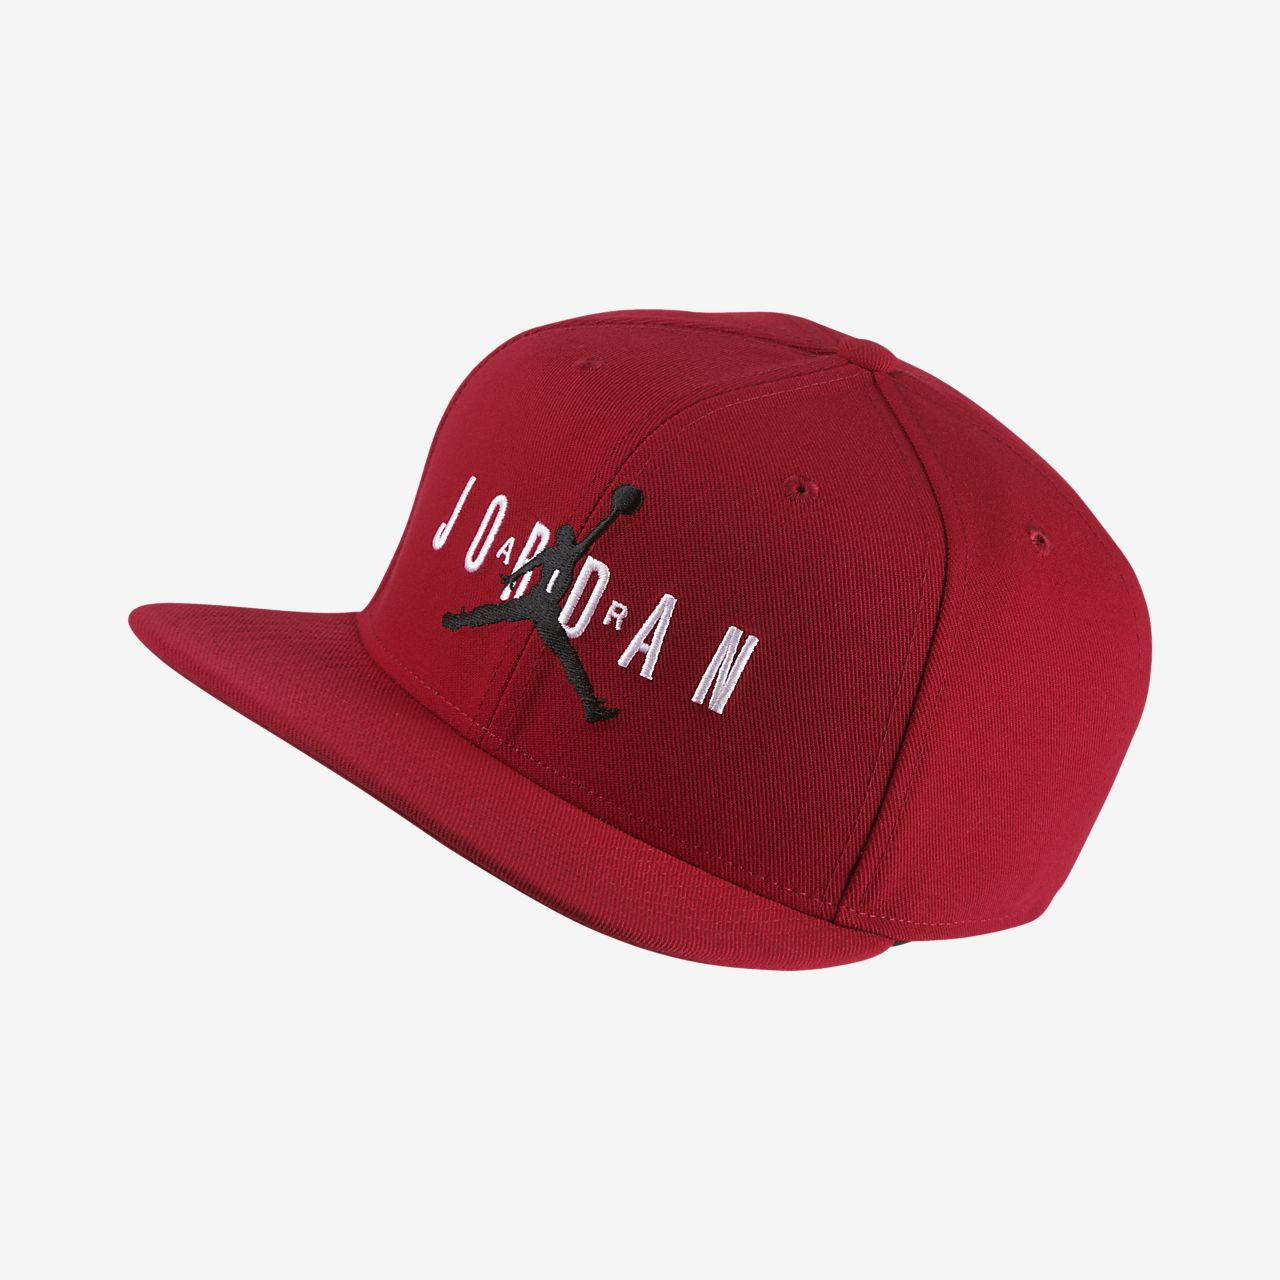 Jordan Pro Jumpman Air verstellbare Cap